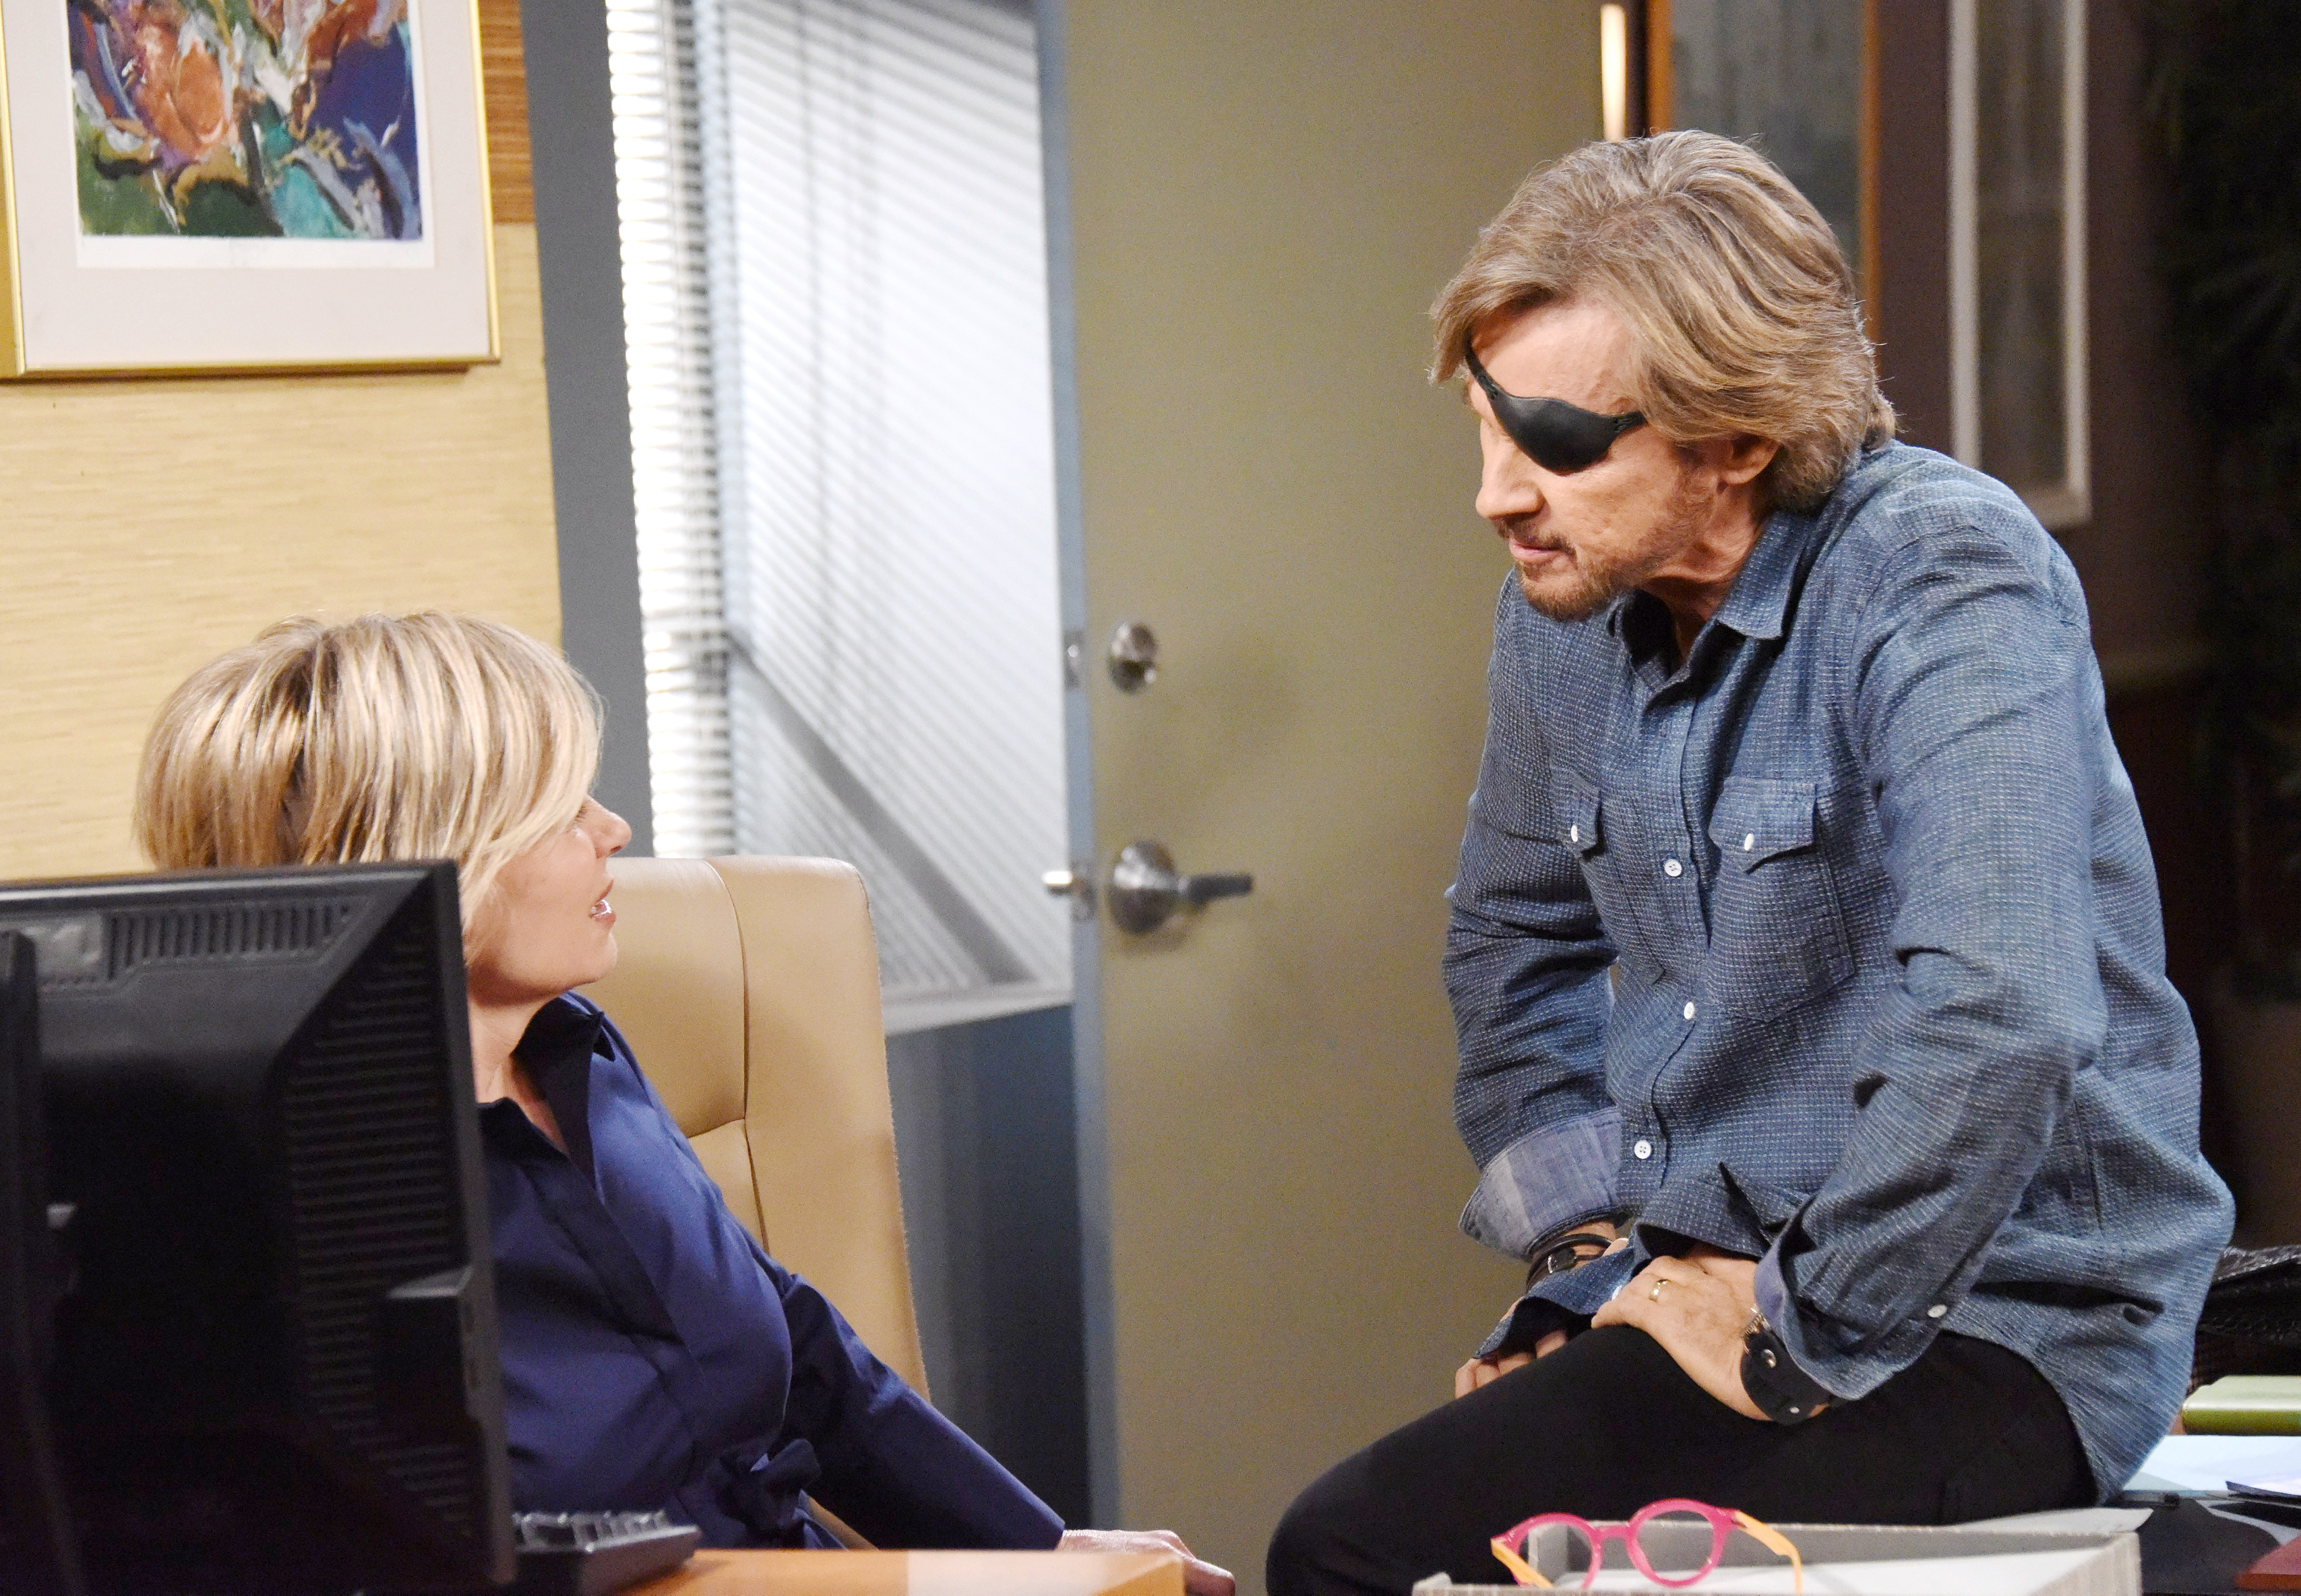 Days of Our Lives Spoilers: Coming up August 7 – August 11